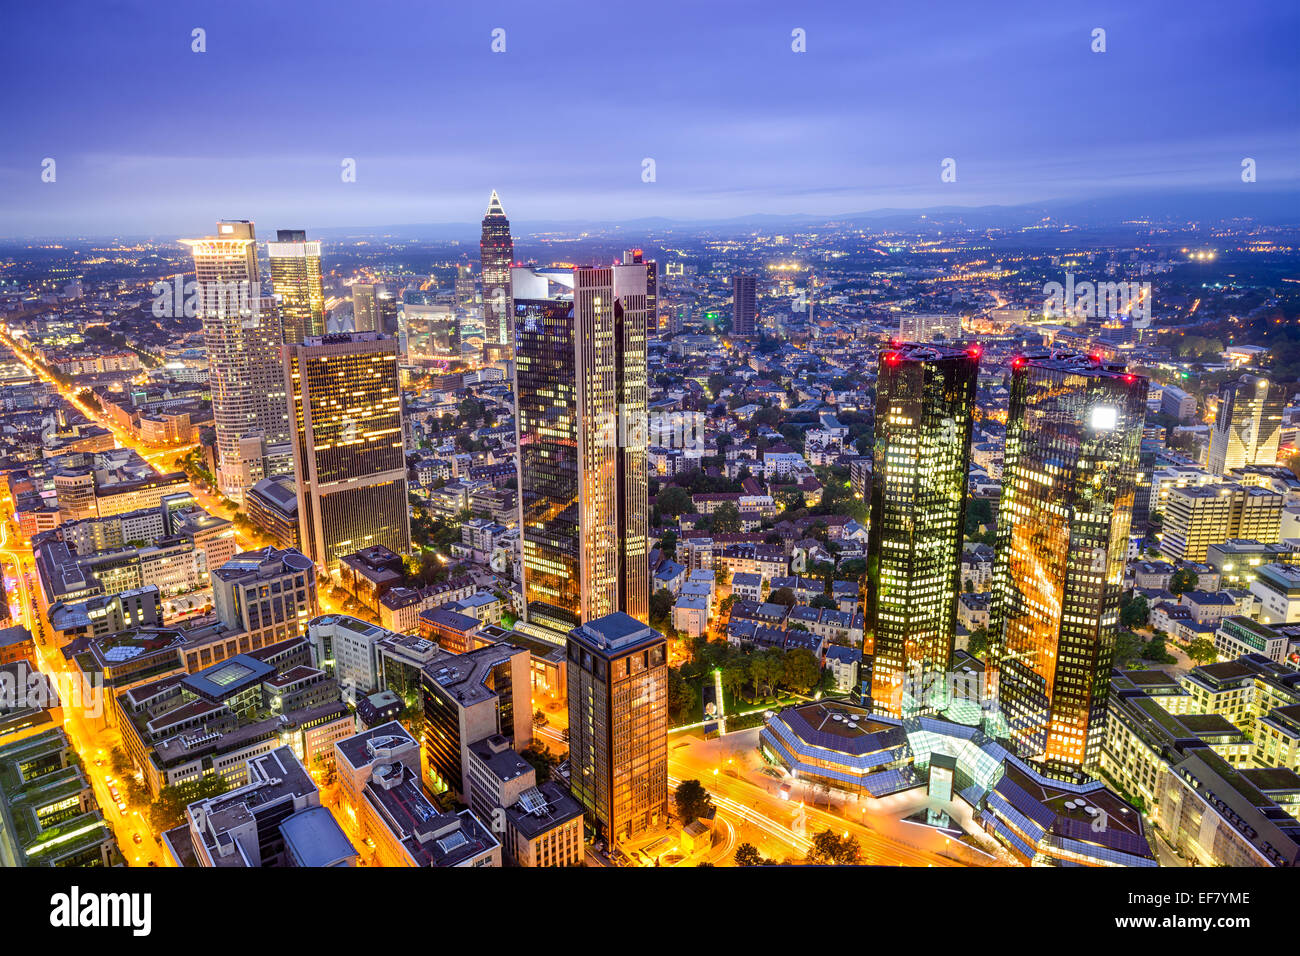 Frankfurt, Germany downtown financial district skyline. Stock Photo